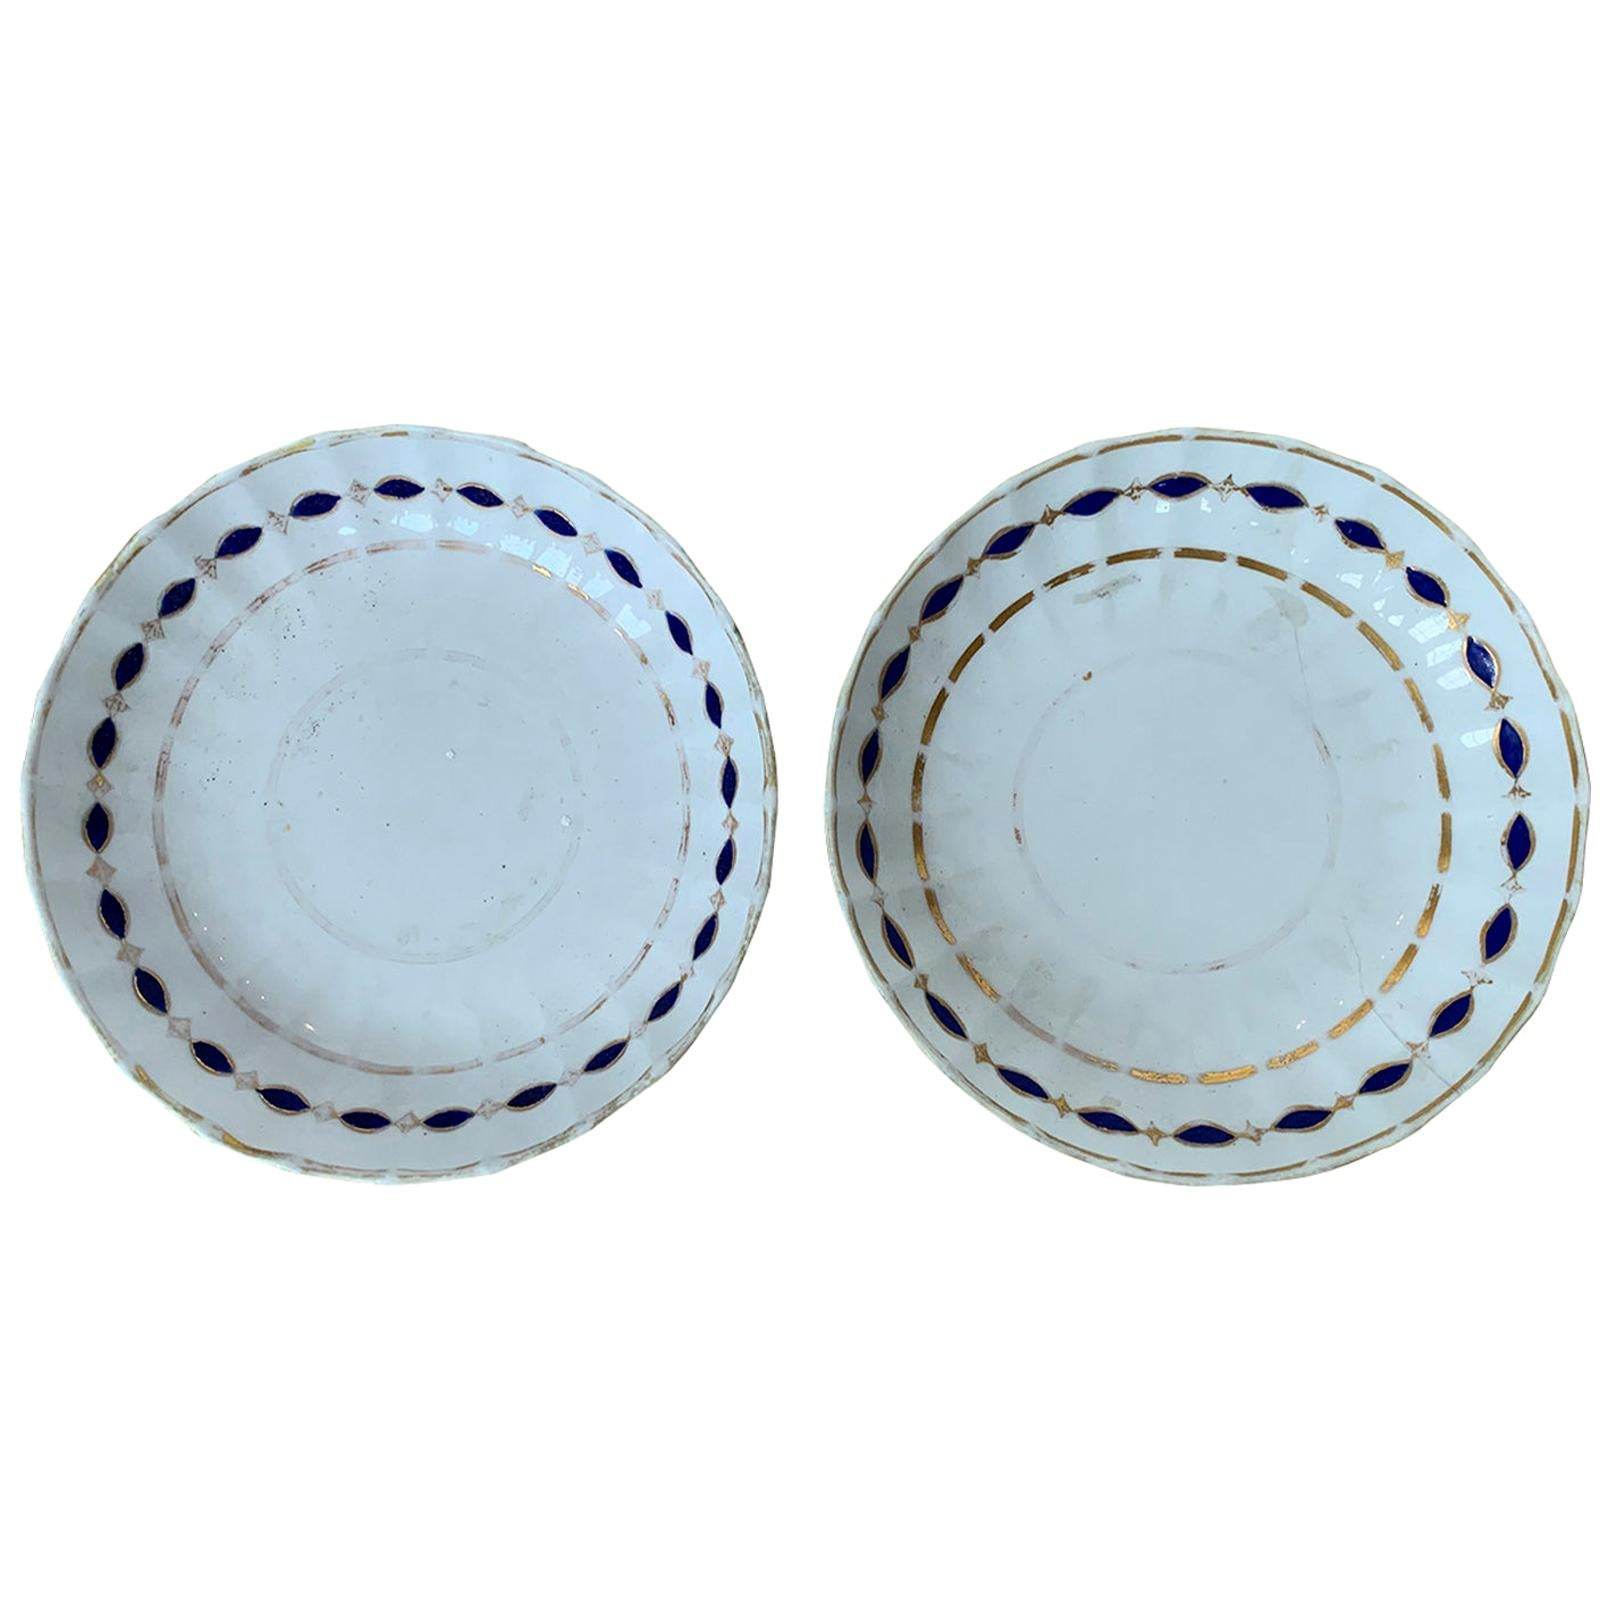 Pair of Late 18th-Early 19th Century English Royal Crown Derby Plates, Puce Mark